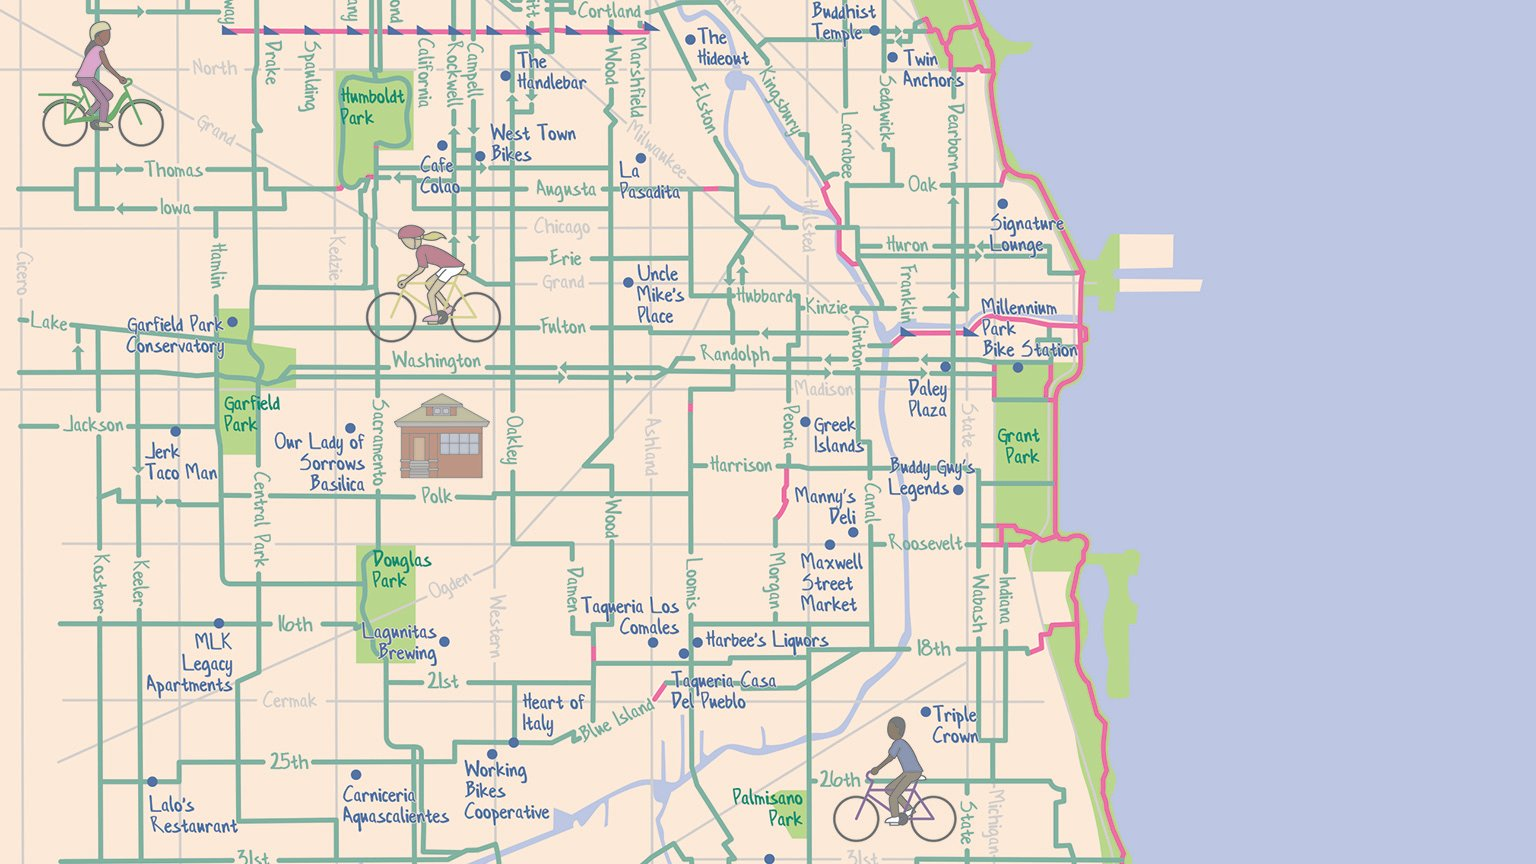 Chicago Bike Map New Chicago Bike Map Highlights Most 'Mellow' Routes | Chicago